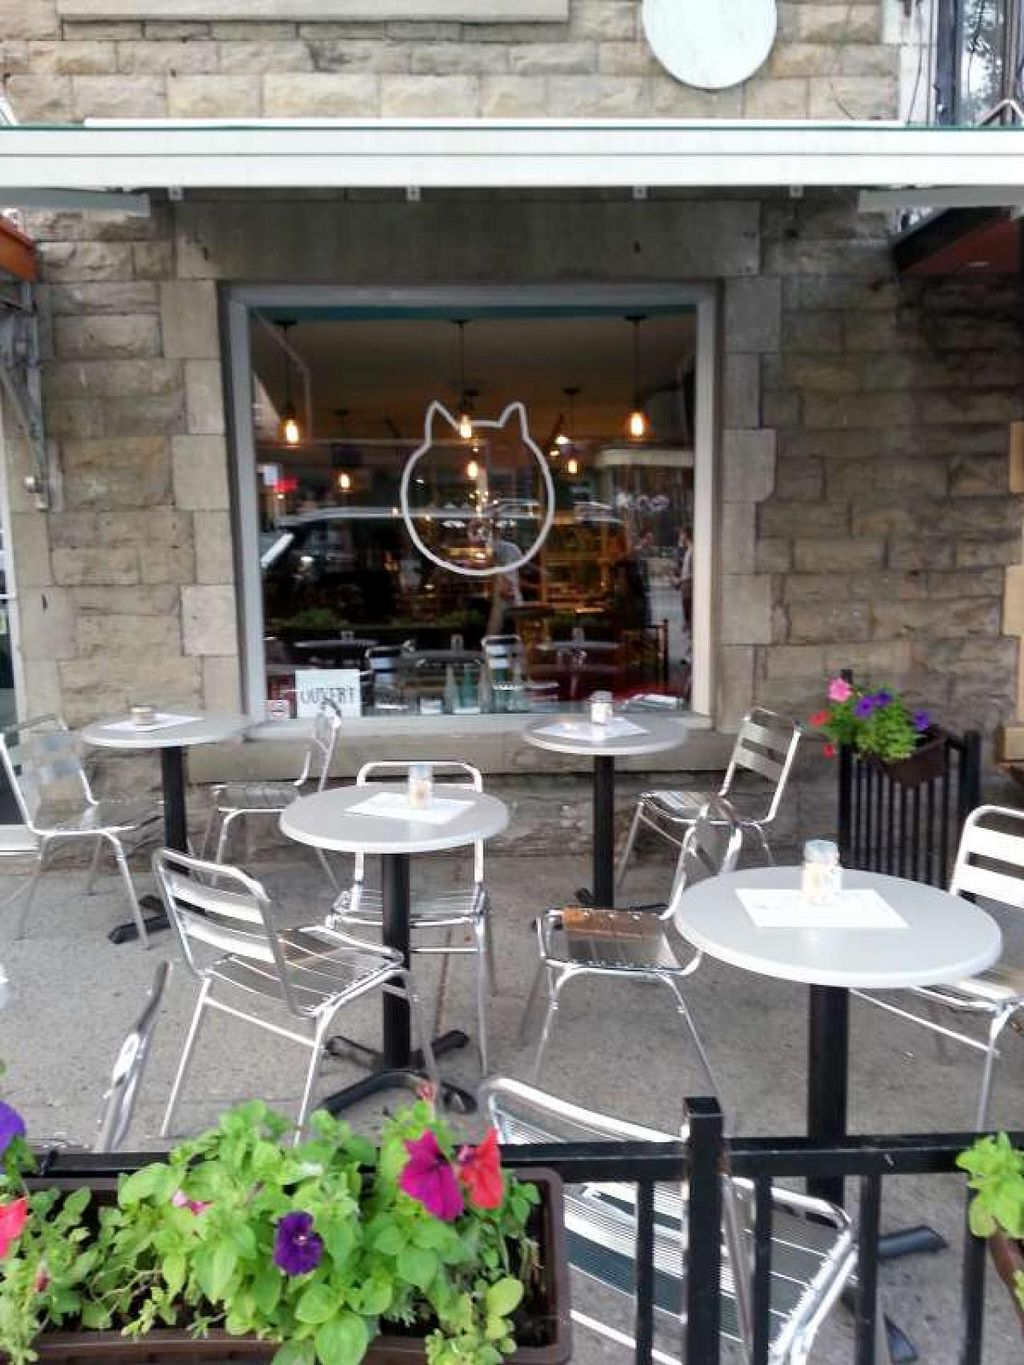 """Photo of CLOSED: Venosa Cafe  by <a href=""""/members/profile/yupsate"""">yupsate</a> <br/>The front terrace of Cafe Venosa <br/> July 8, 2015  - <a href='/contact/abuse/image/58382/108561'>Report</a>"""